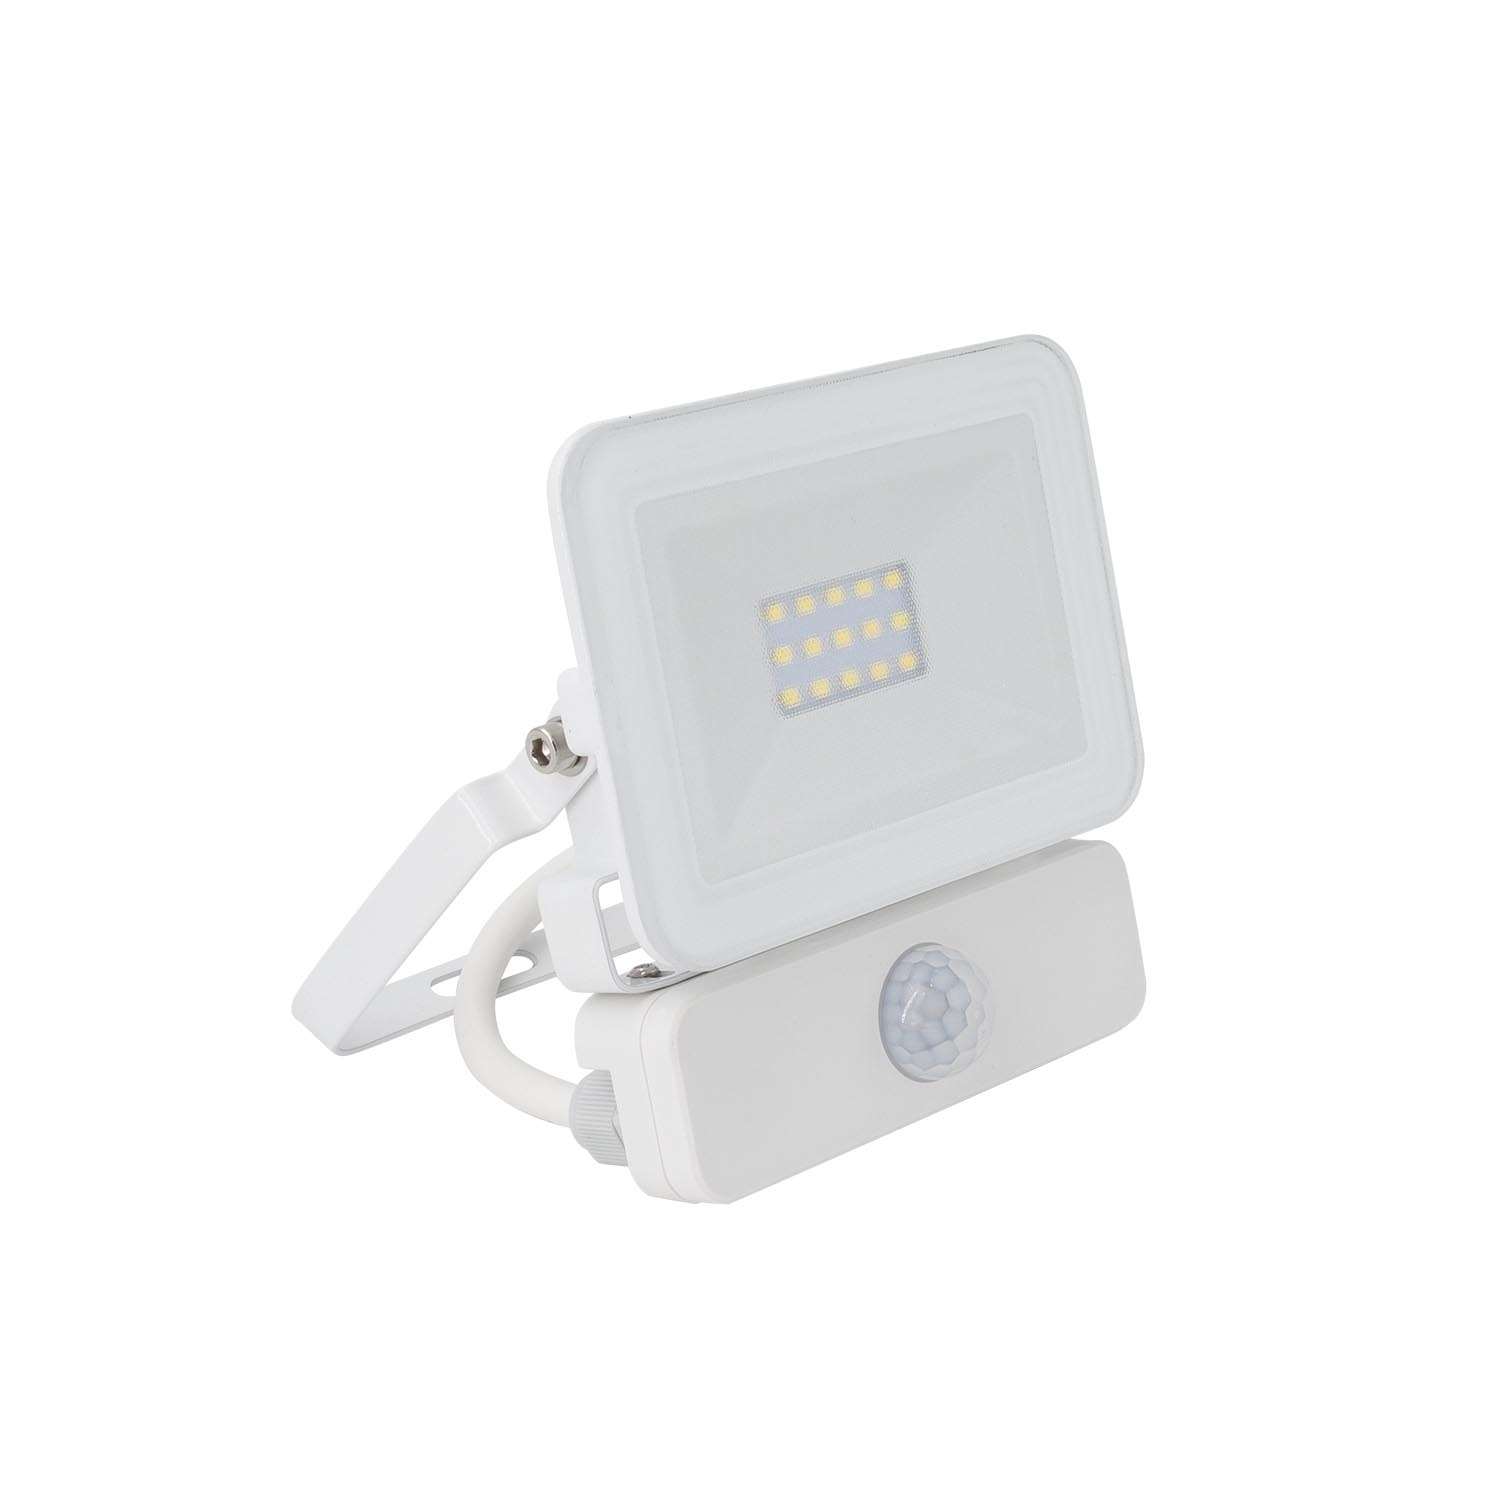 Slim 10w Led Floodlight With A Pir Motion Sensor Ledkia Light Switch Security Flood Series Foco Proyector Con Detector